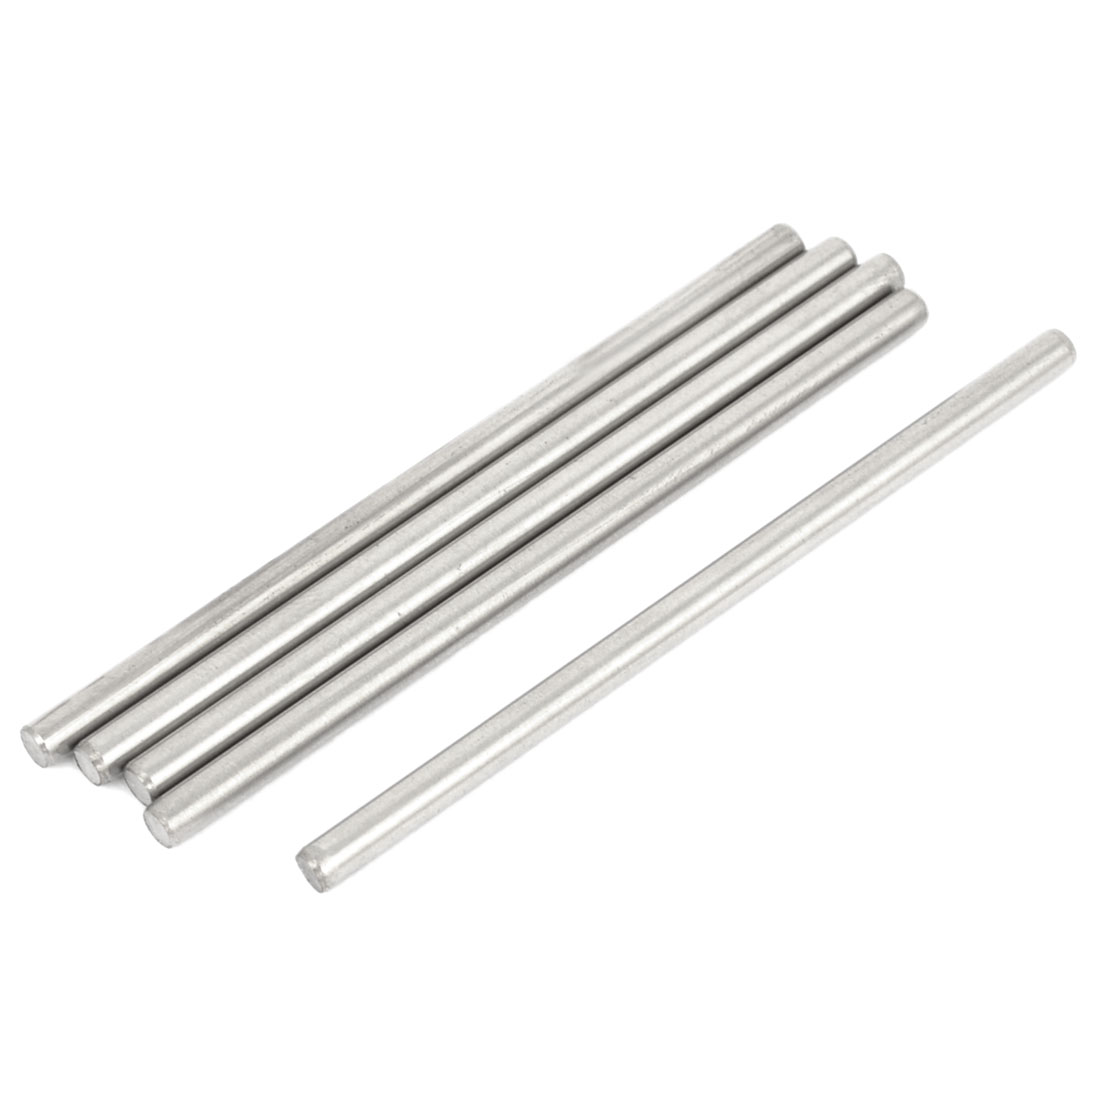 5 Pcs <font><b>3mm</b></font> Dia 6cm Long Stainless Steel RC Helicopter Transmission Round <font><b>Rods</b></font> image